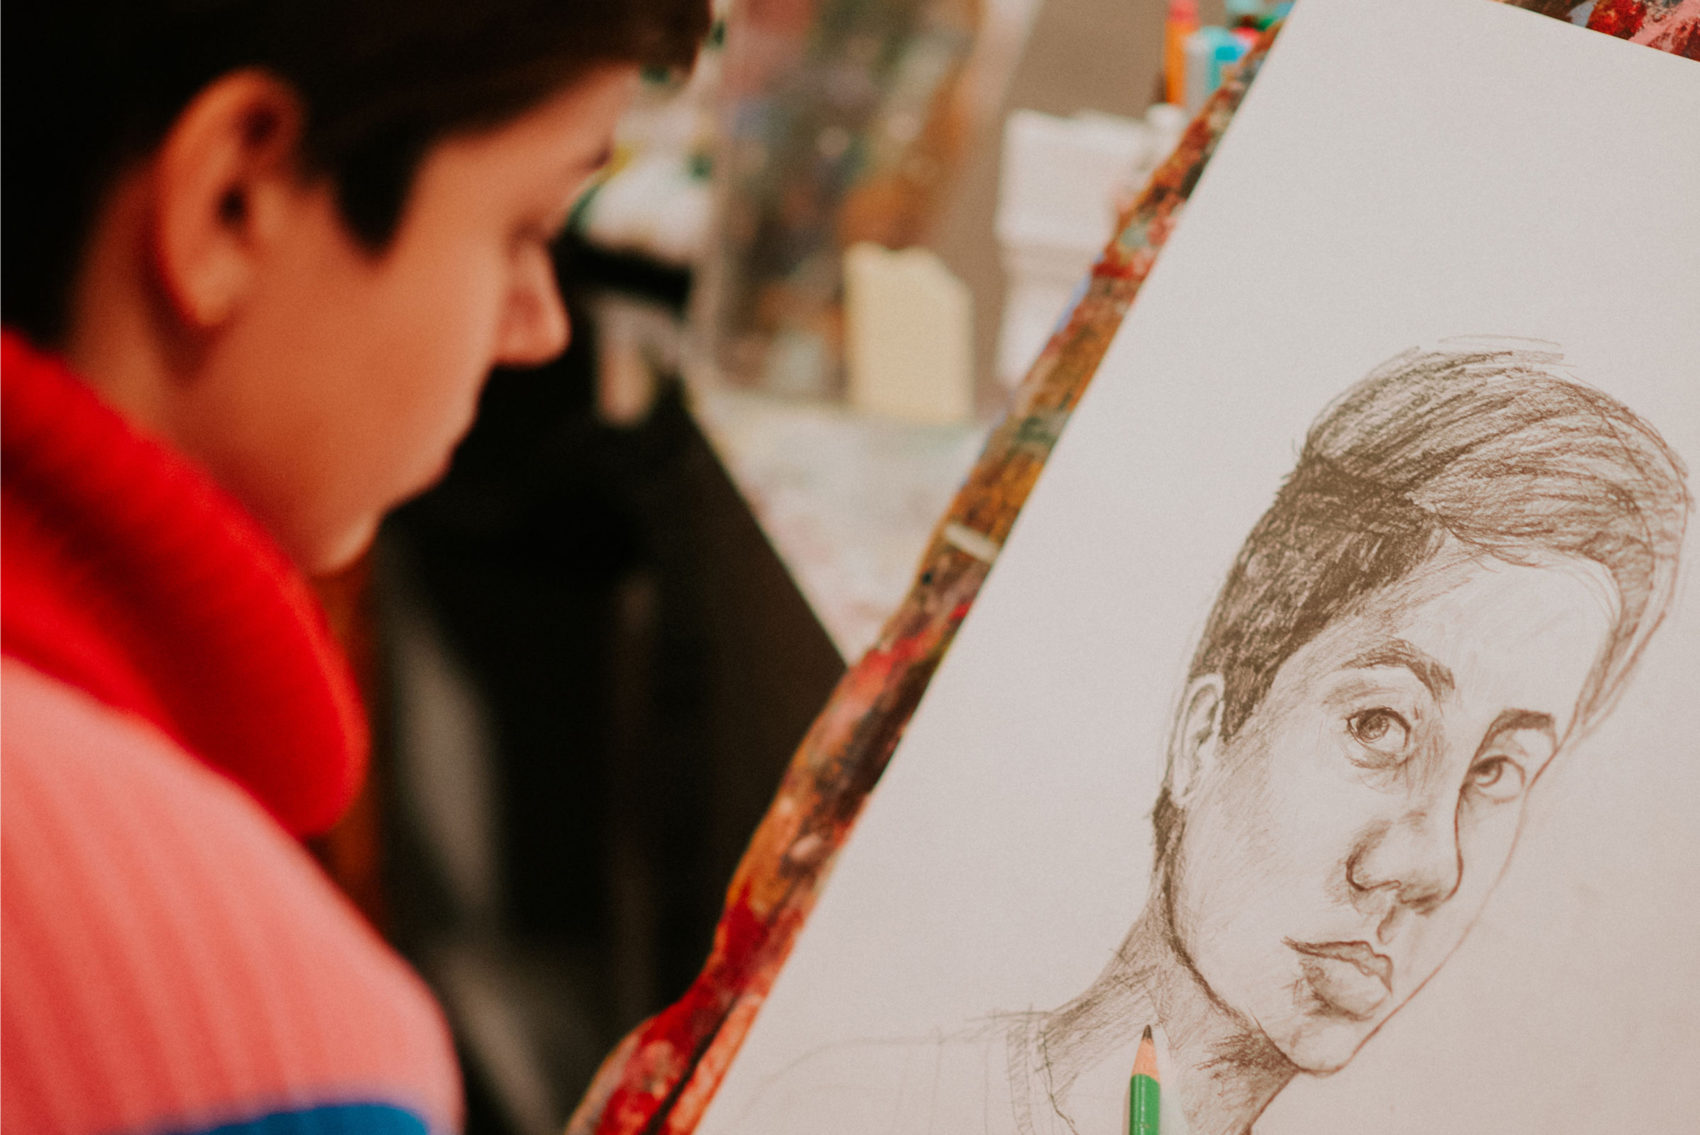 Student with self portrait